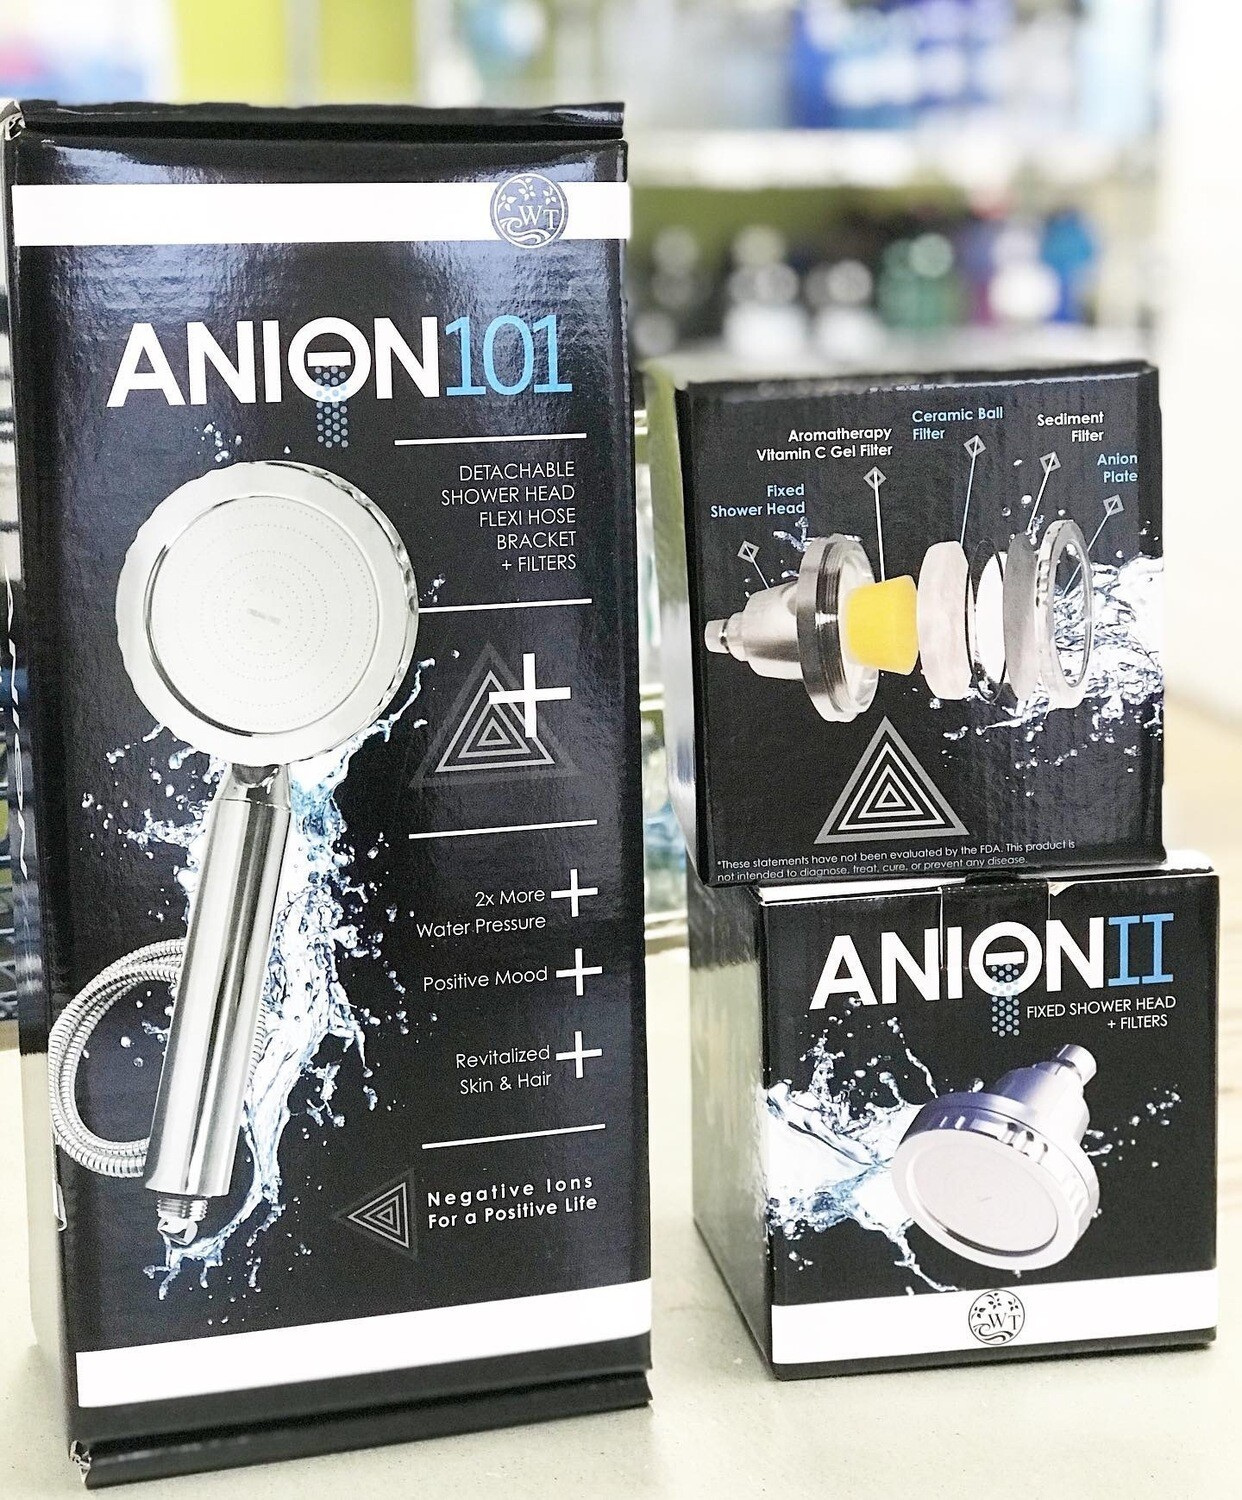 Anion 101 Showerhead w/ Hose